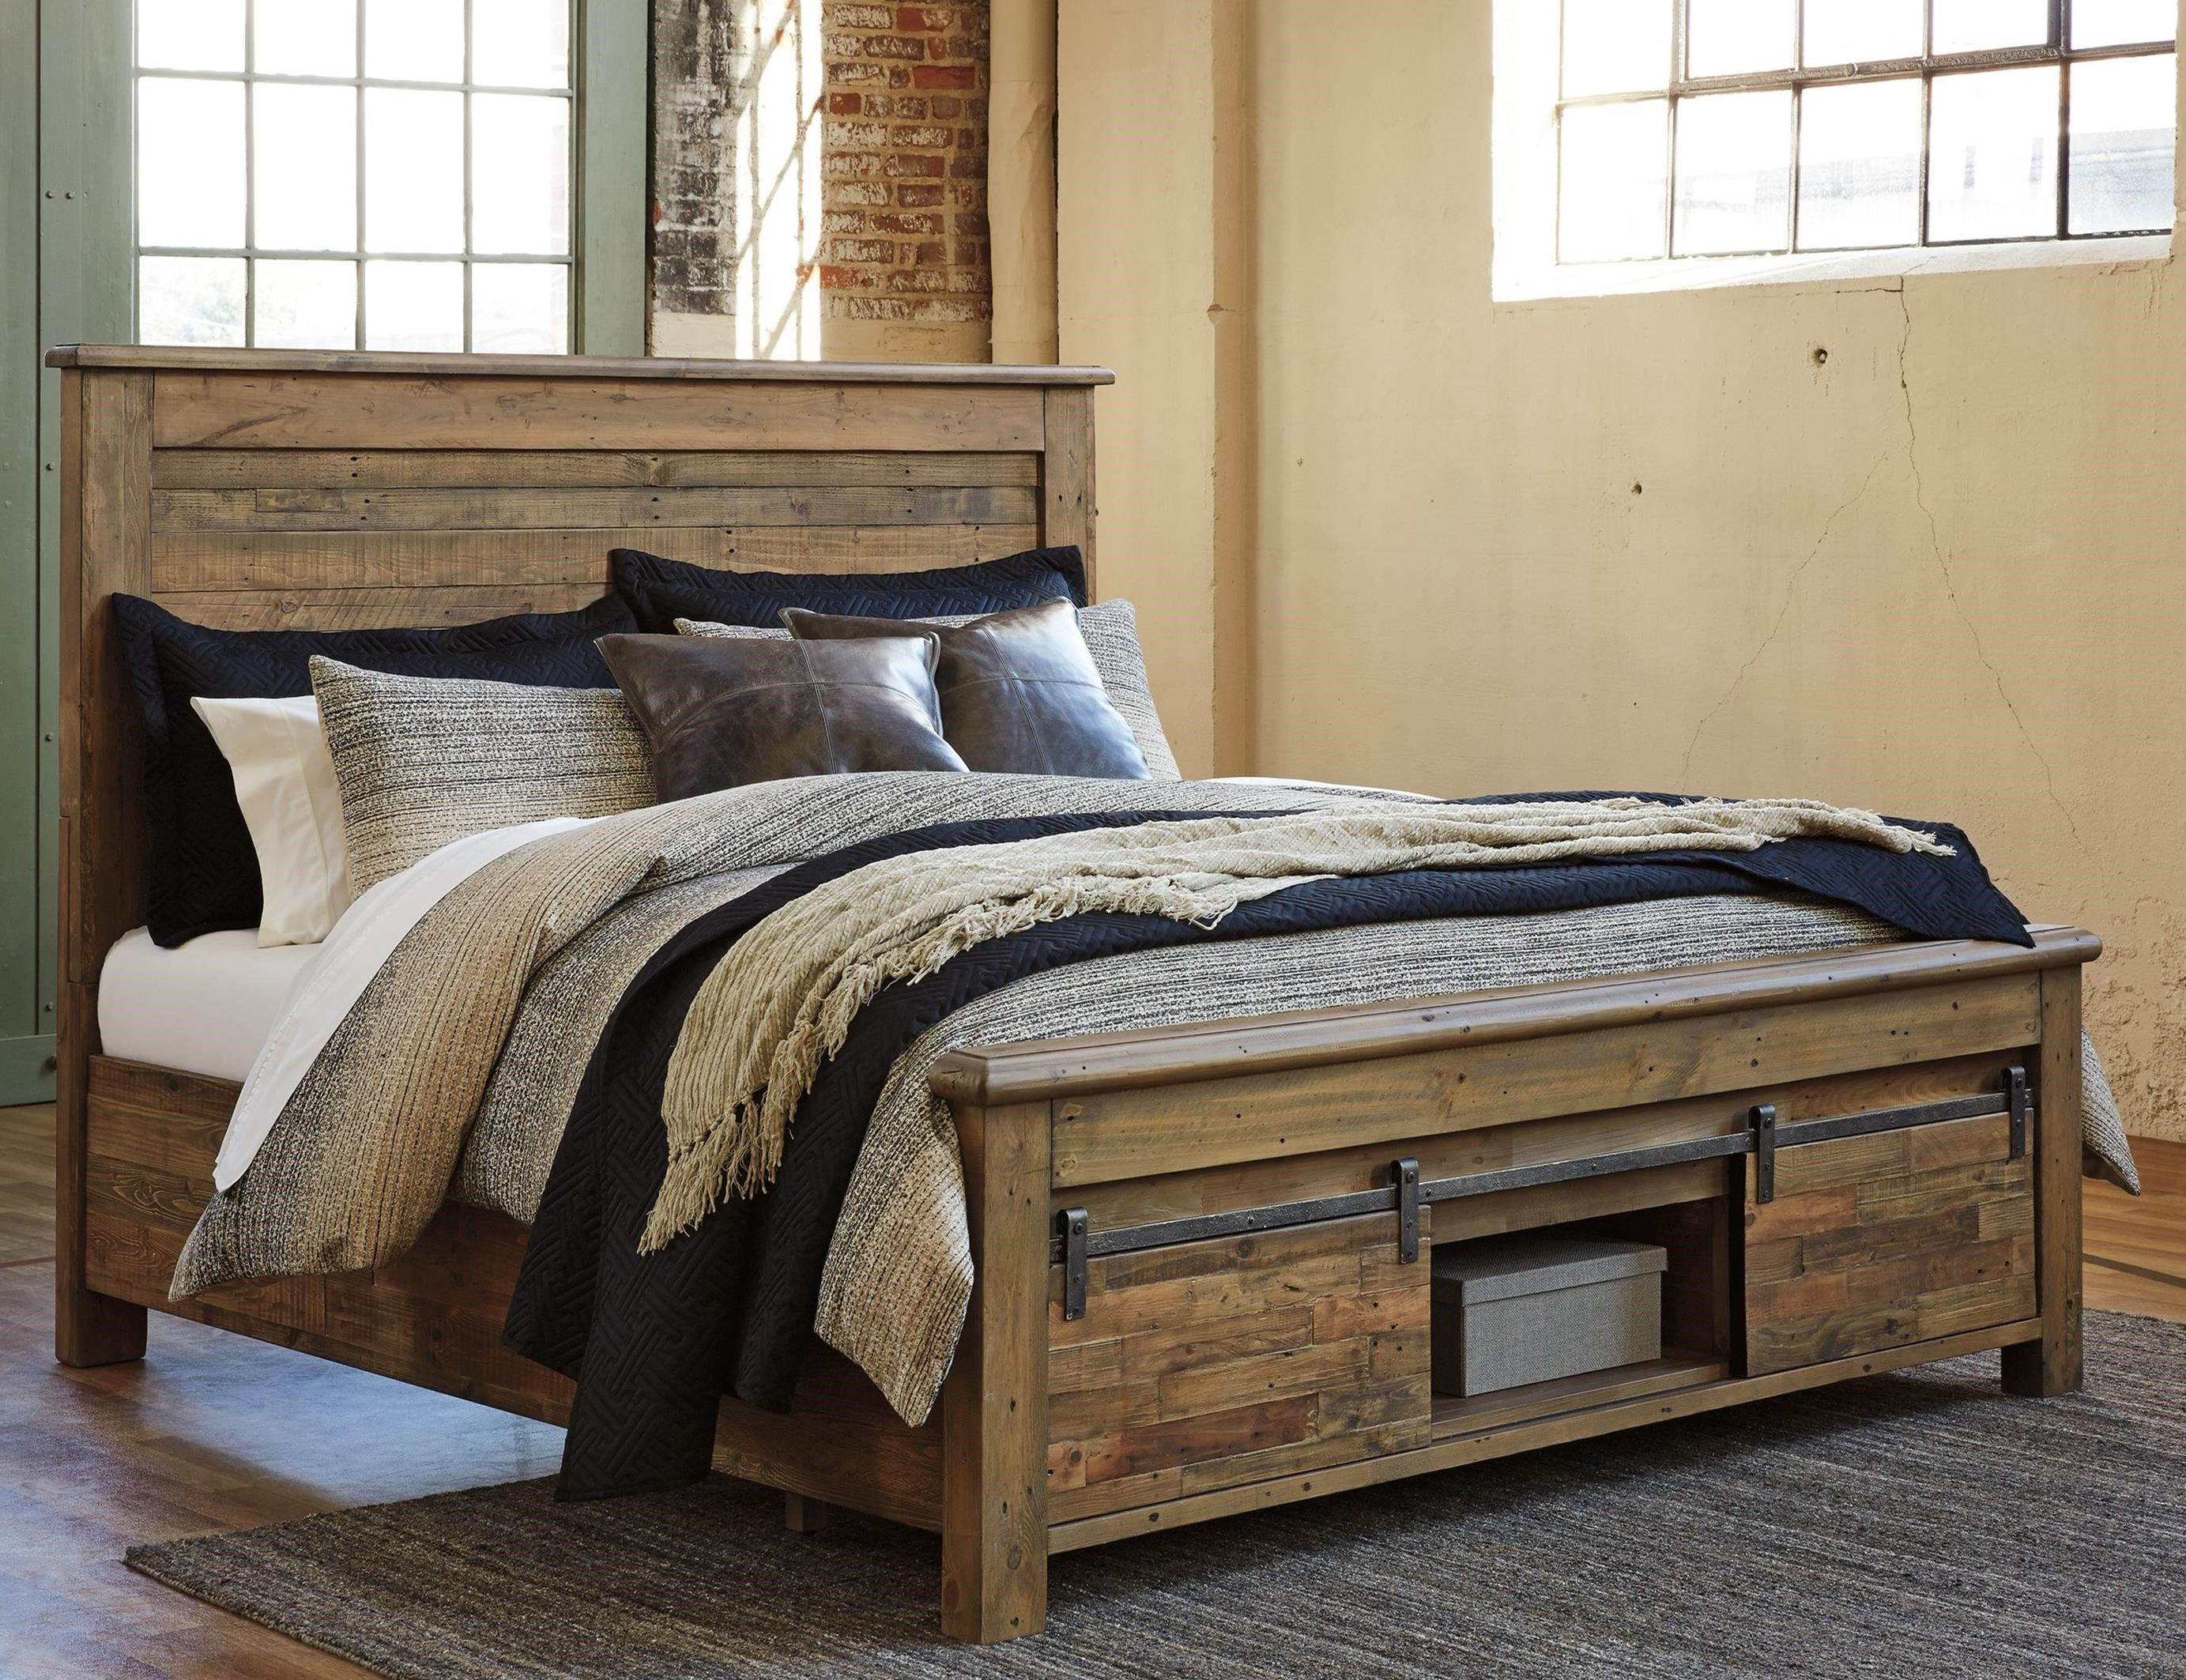 Signature Design By Ashley Sommerford Queen Panel Storage Bed   Item  Number: B775 77